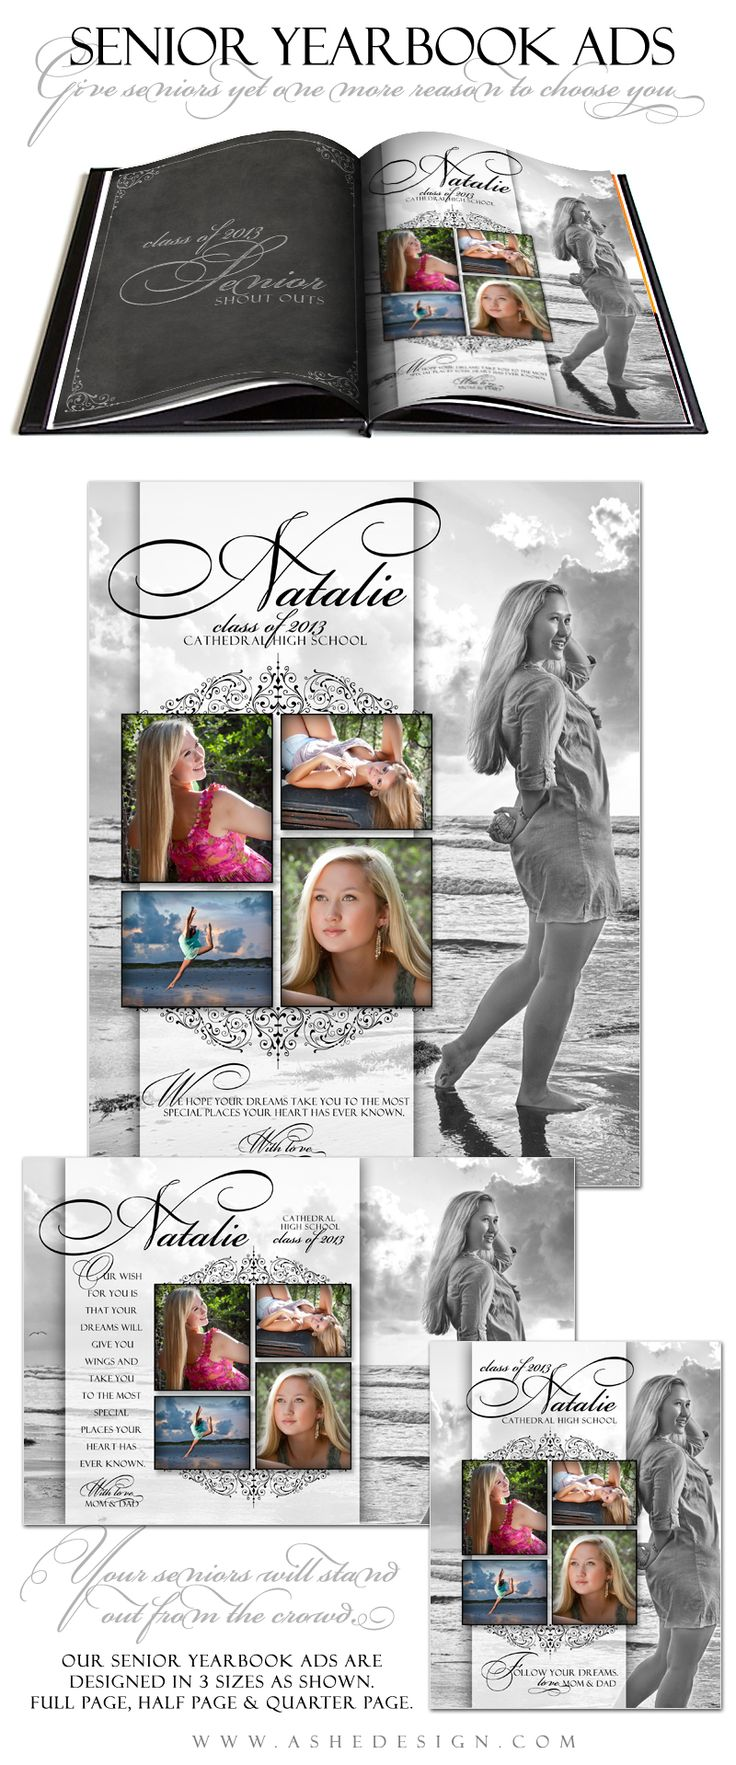 Senior Yearbook Ad Template Designs for Photographers - ashedesign.com